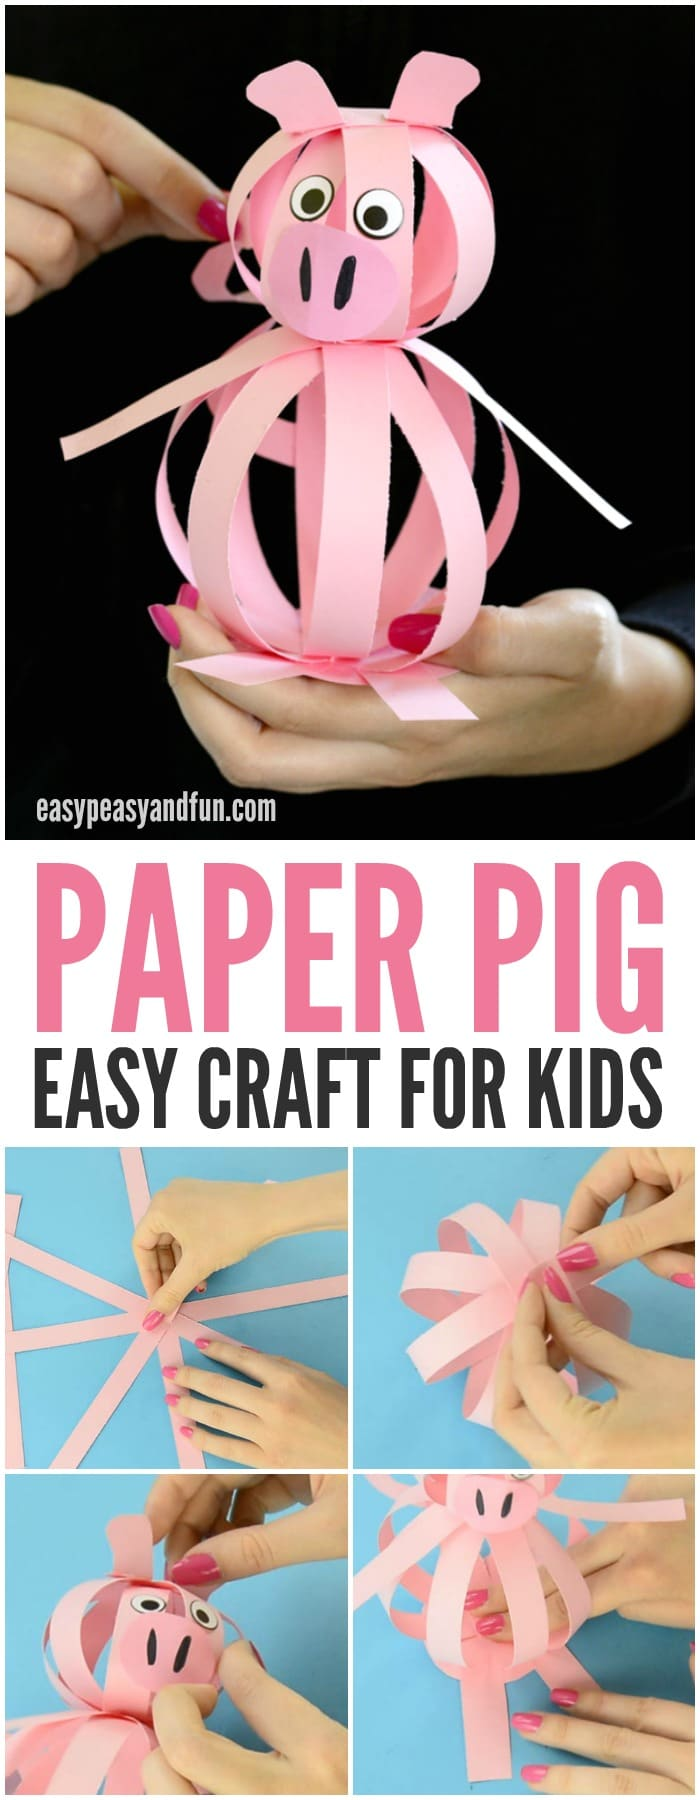 Make This Easy Paper Pig Craft